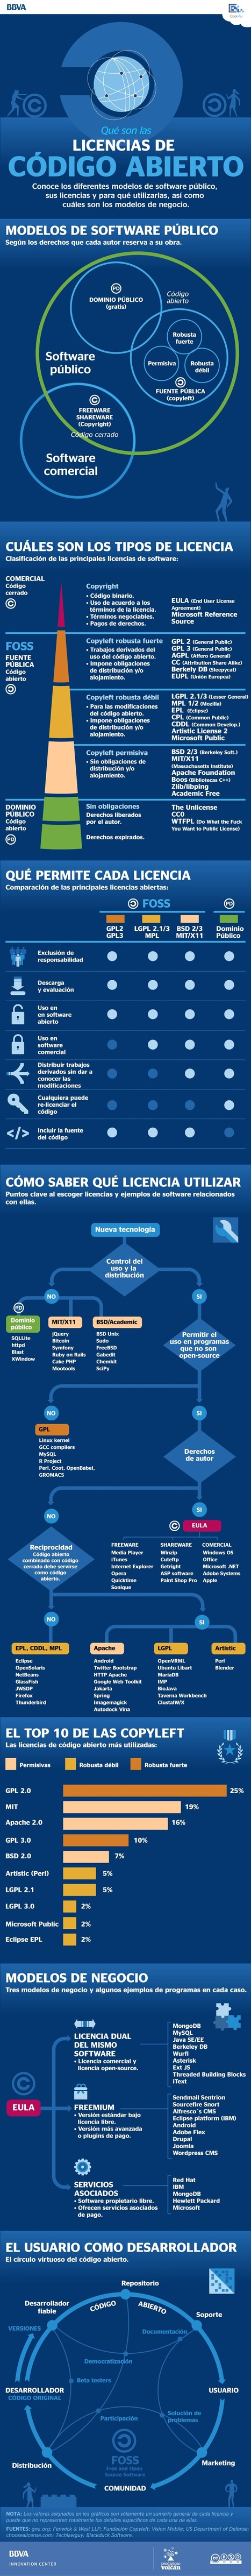 Qué son las licencias de código abierto | UAM B-learning | Scoop.it